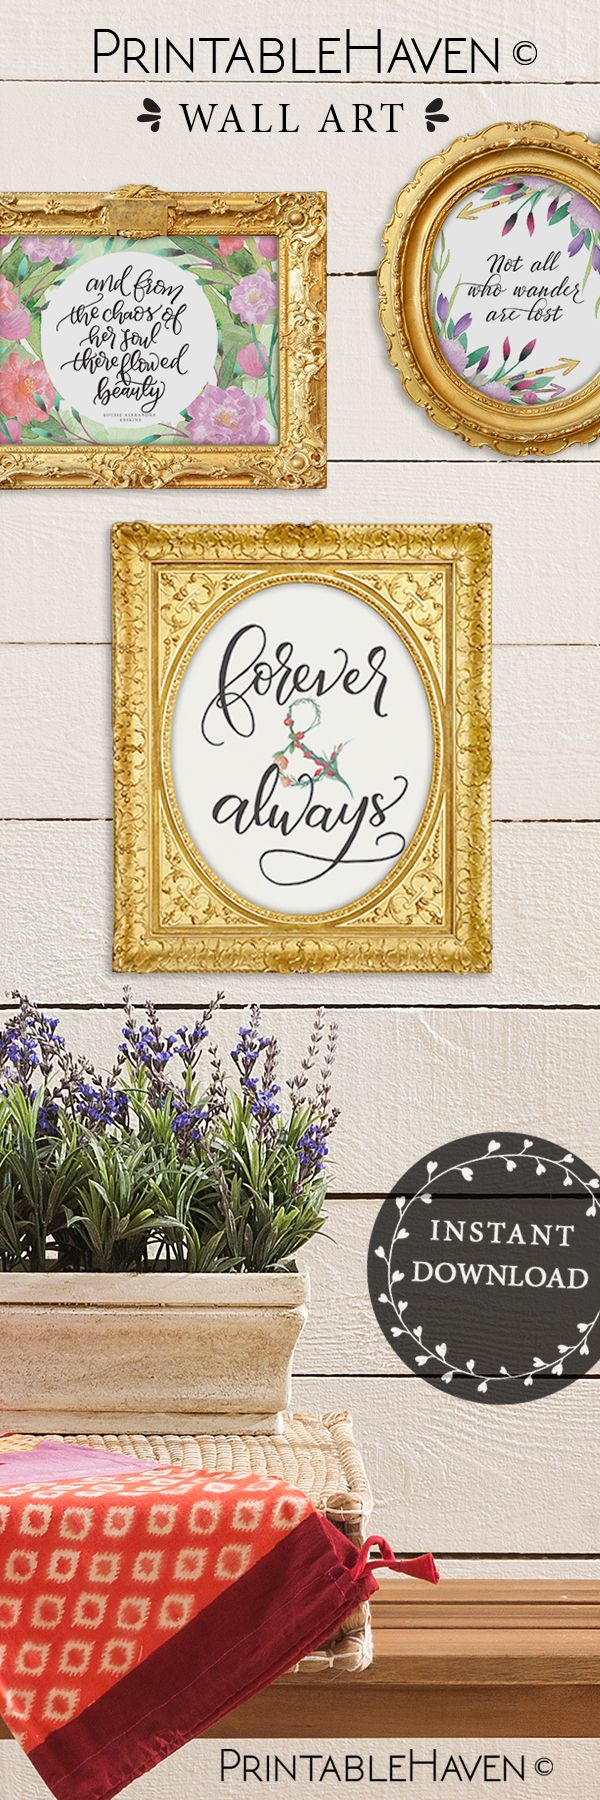 wall candy wall candy arts good wall candy arts  about remodel  - best wall candy printables images on pinterest wall candy